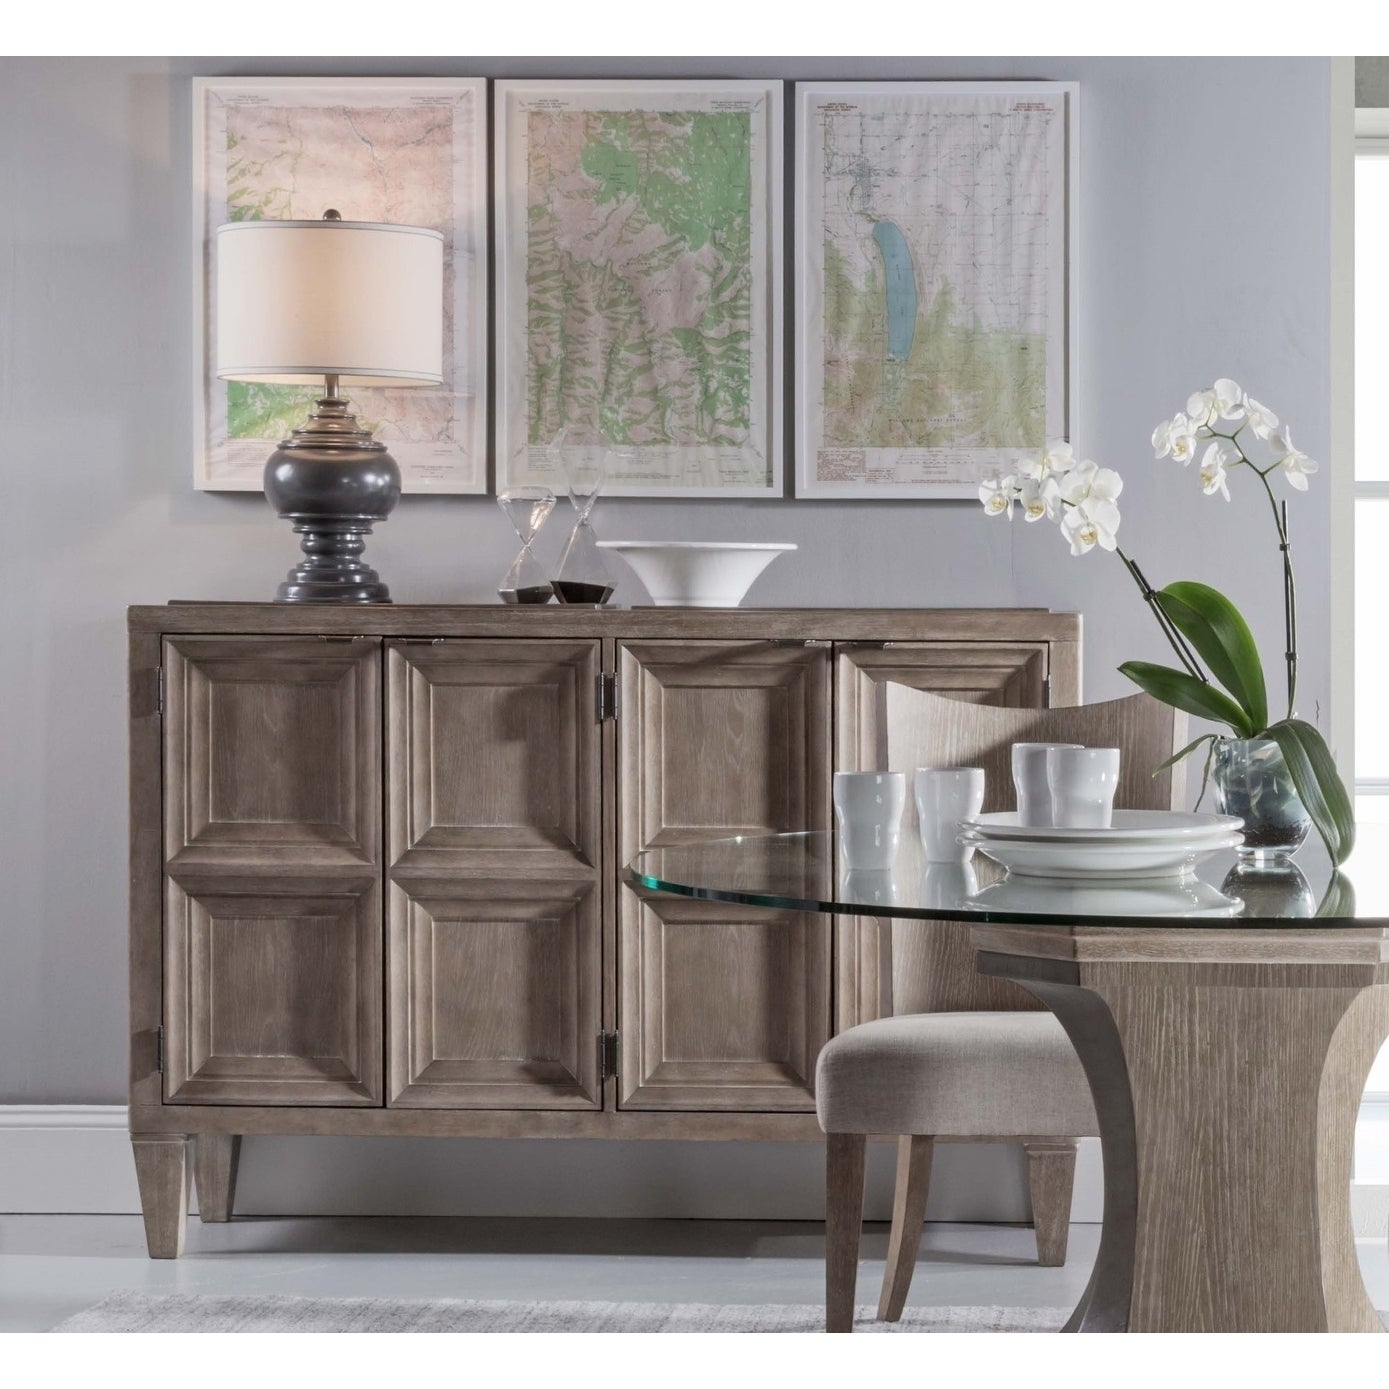 Laguna Credenza Sideboard By Palmetto Home Overstock 28250897